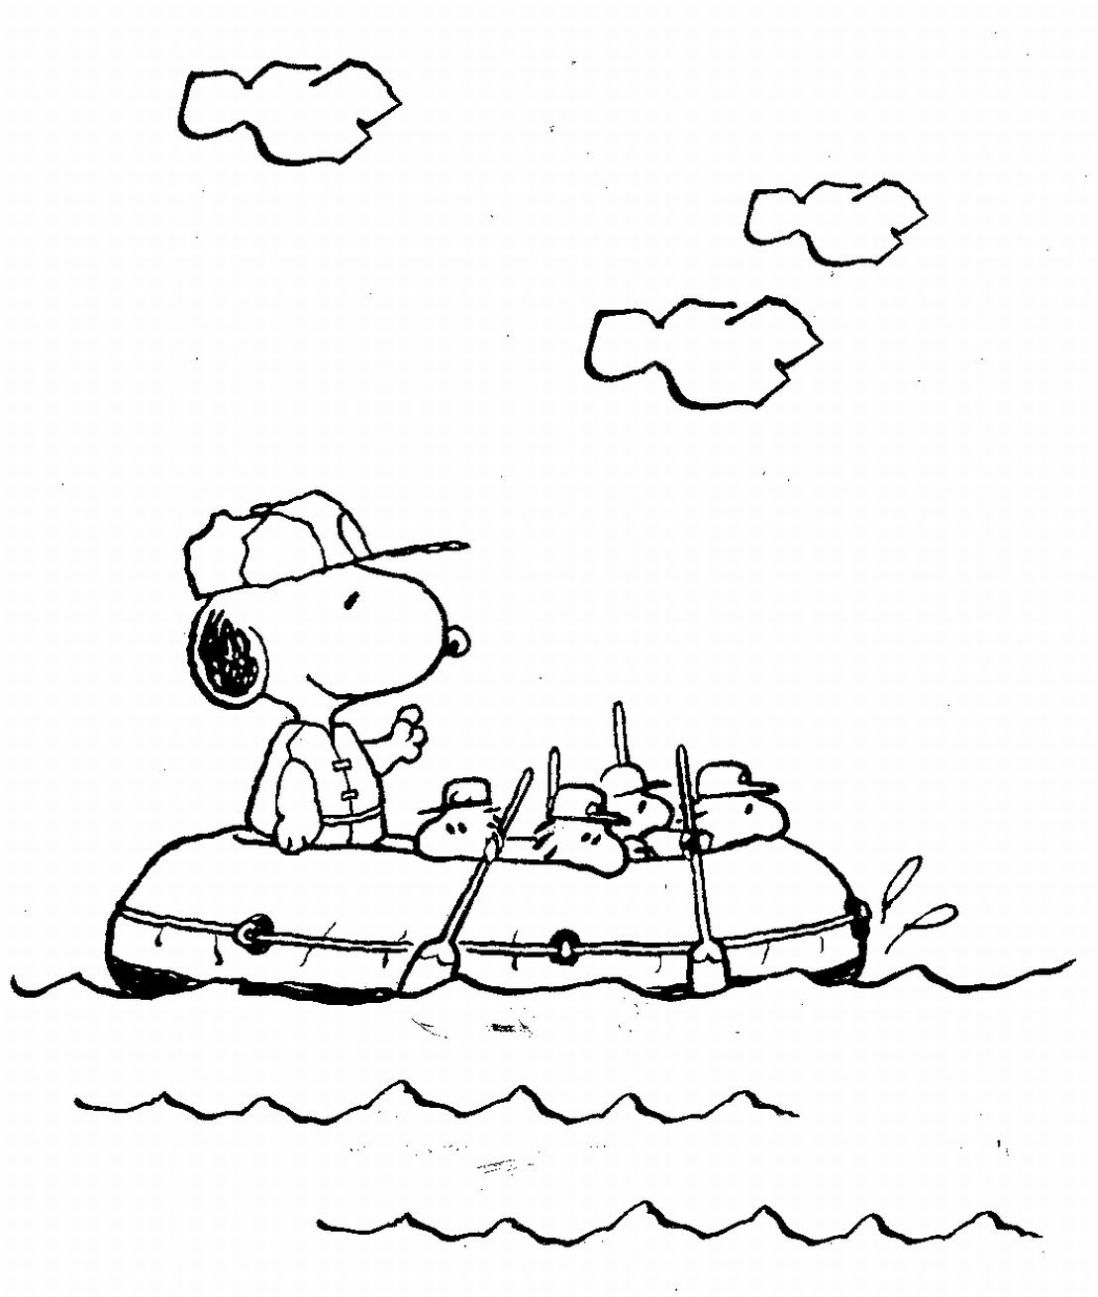 Snoopy on a boat